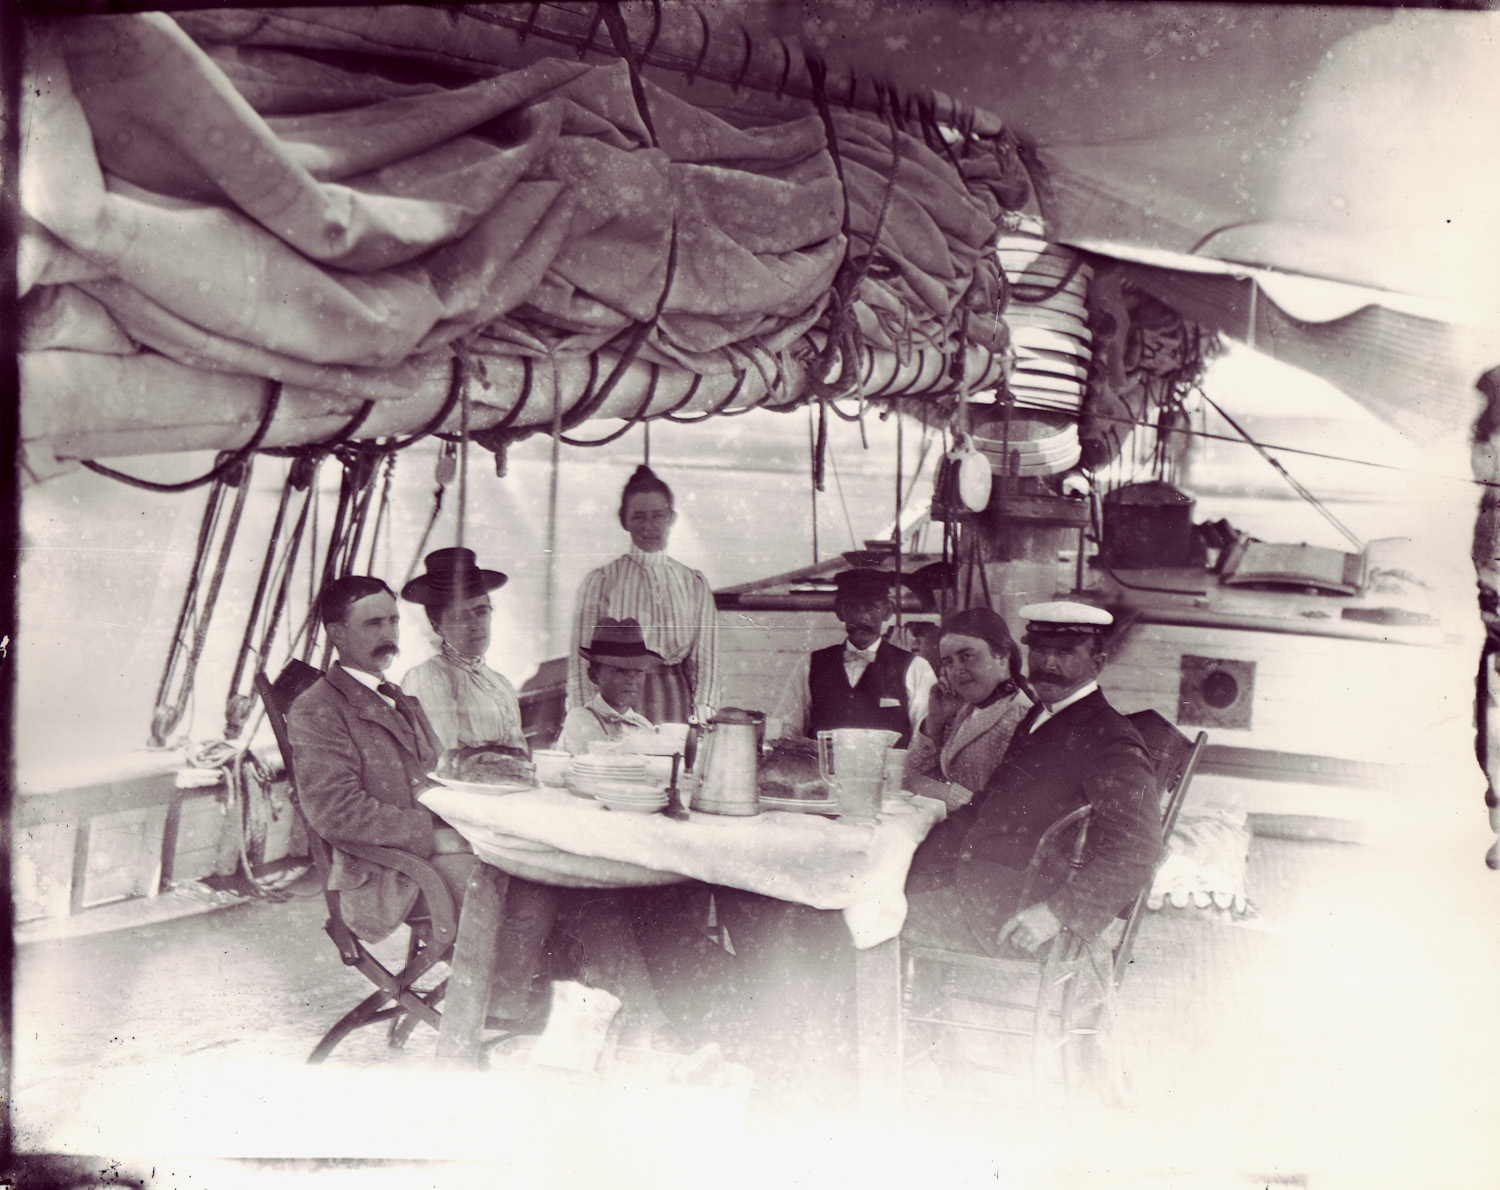 A well-to-do family enjoying a summer aboard the Taber, sailing the waters between Long Island and Newport, circa 1901.